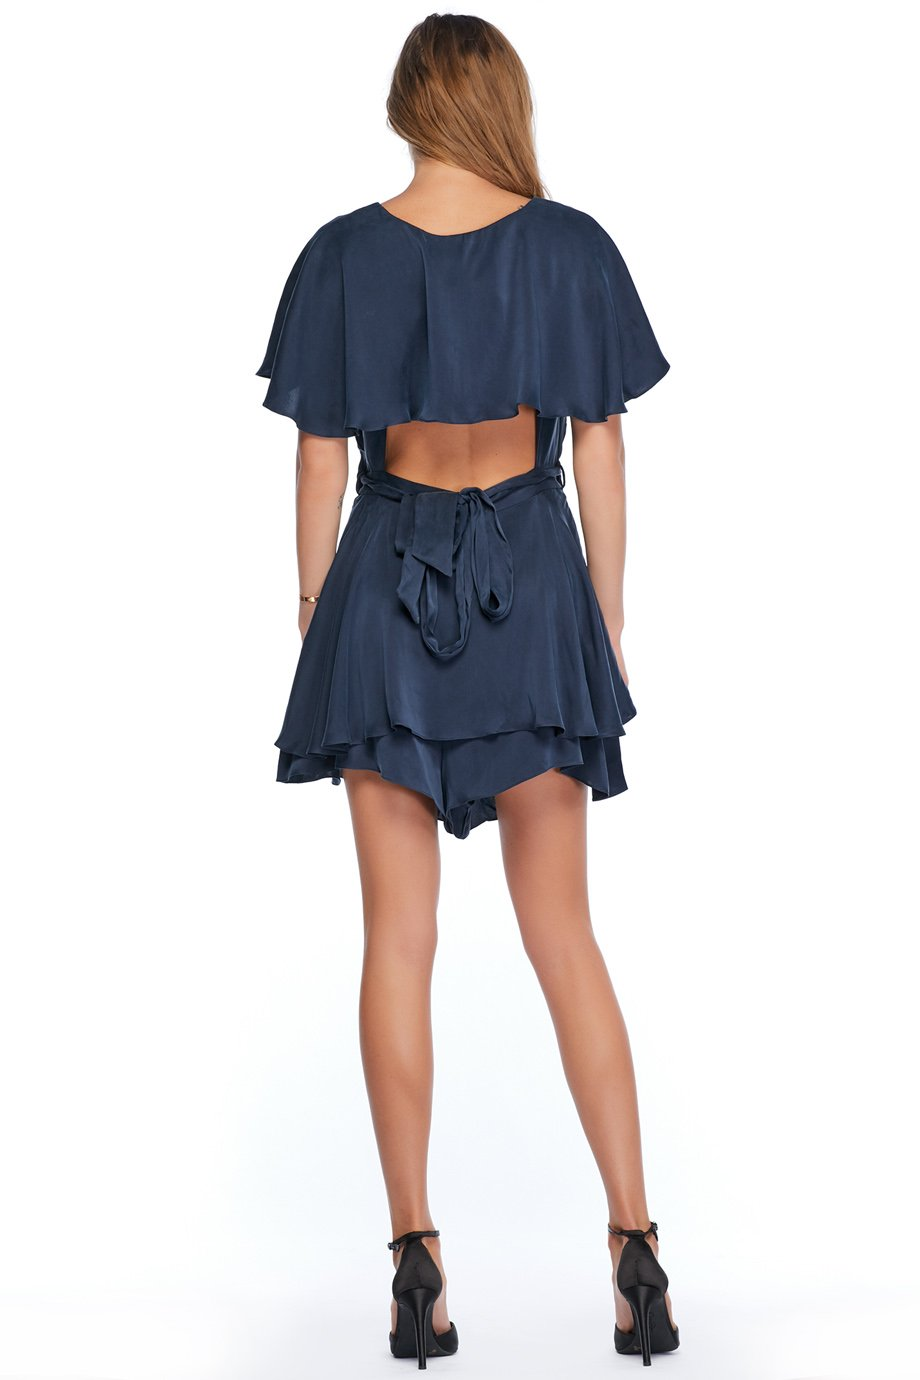 Zimmermann Wrap Blue Knee Length Romper